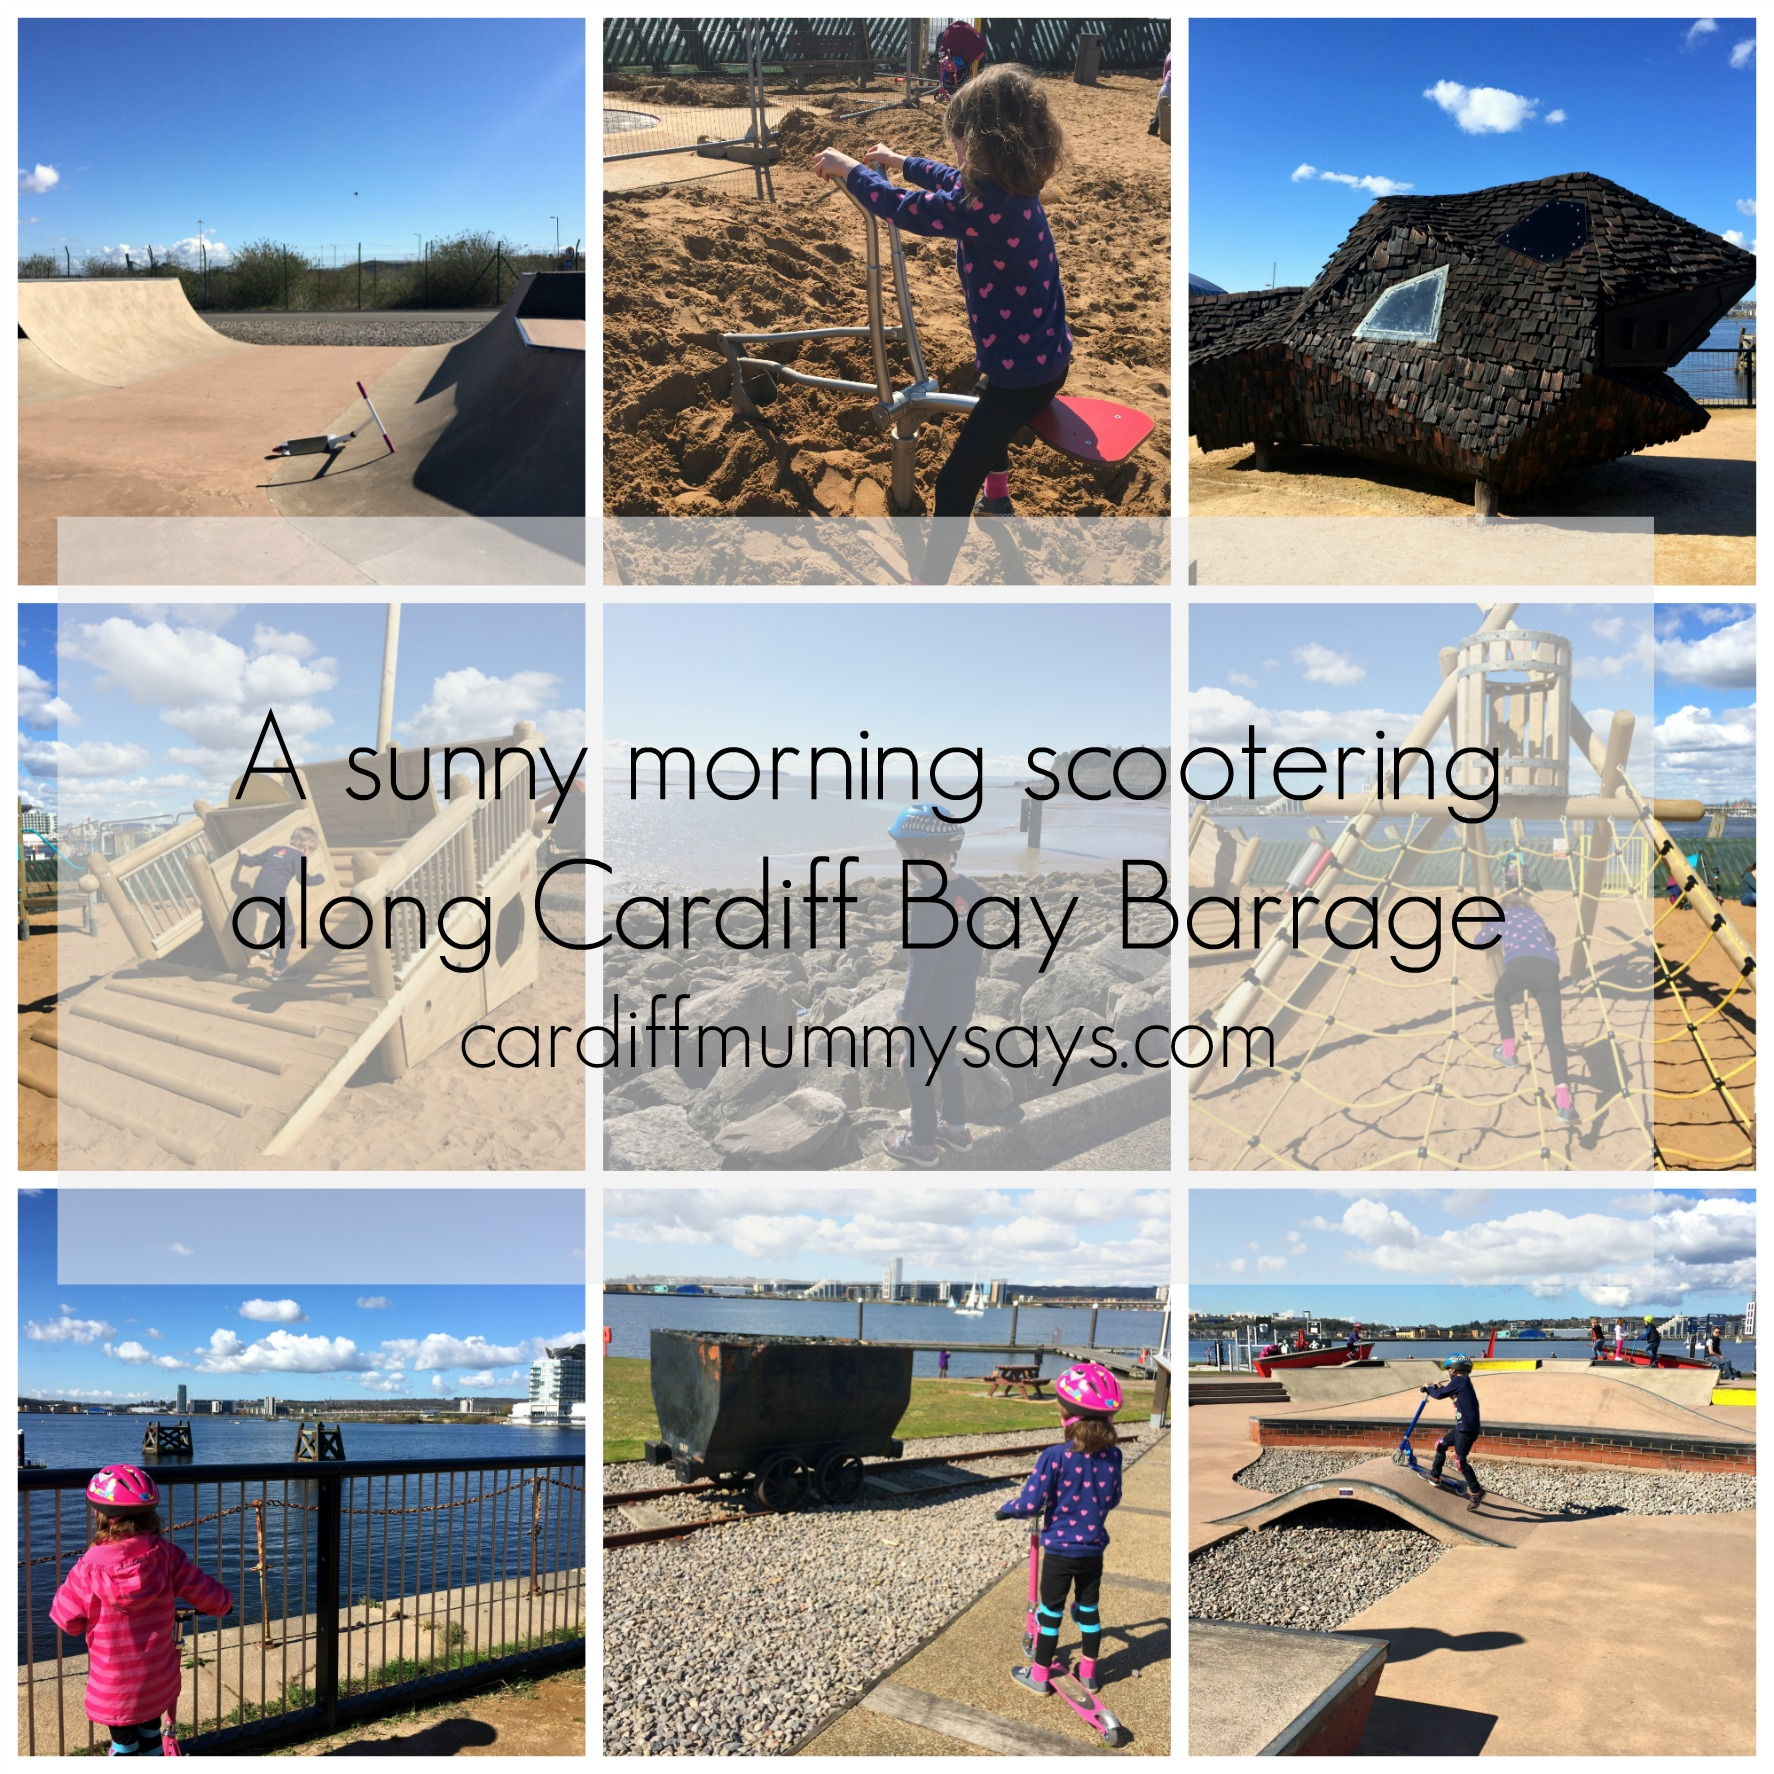 Cardiff Bay Barrage collage 2